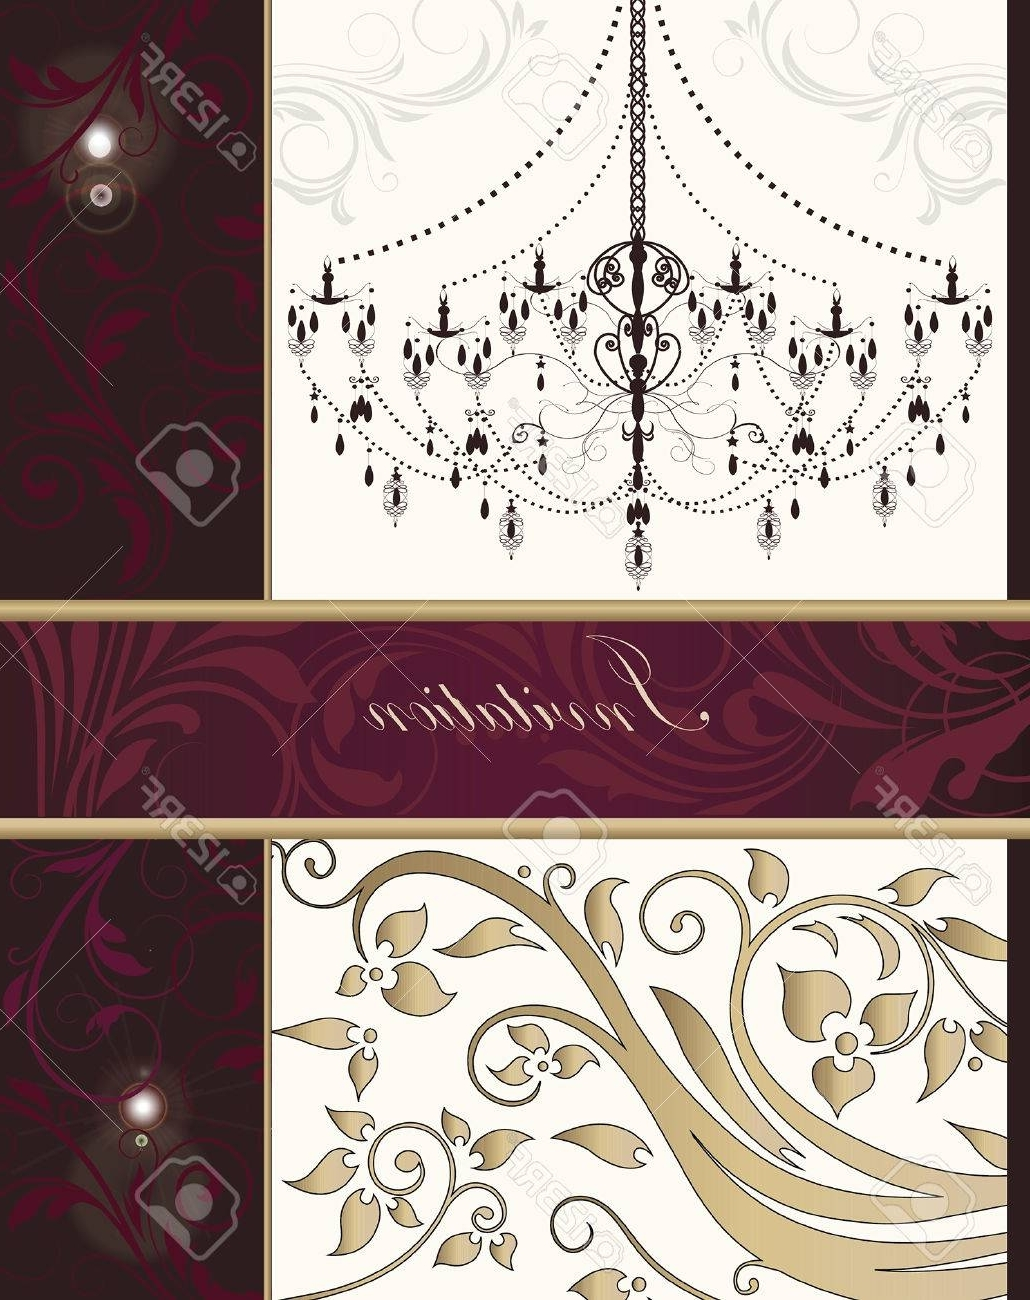 Fuschia Chandelier Intended For Popular Vintage Invitation Card With Ornate Elegant Retro Abstract Floral (View 9 of 20)